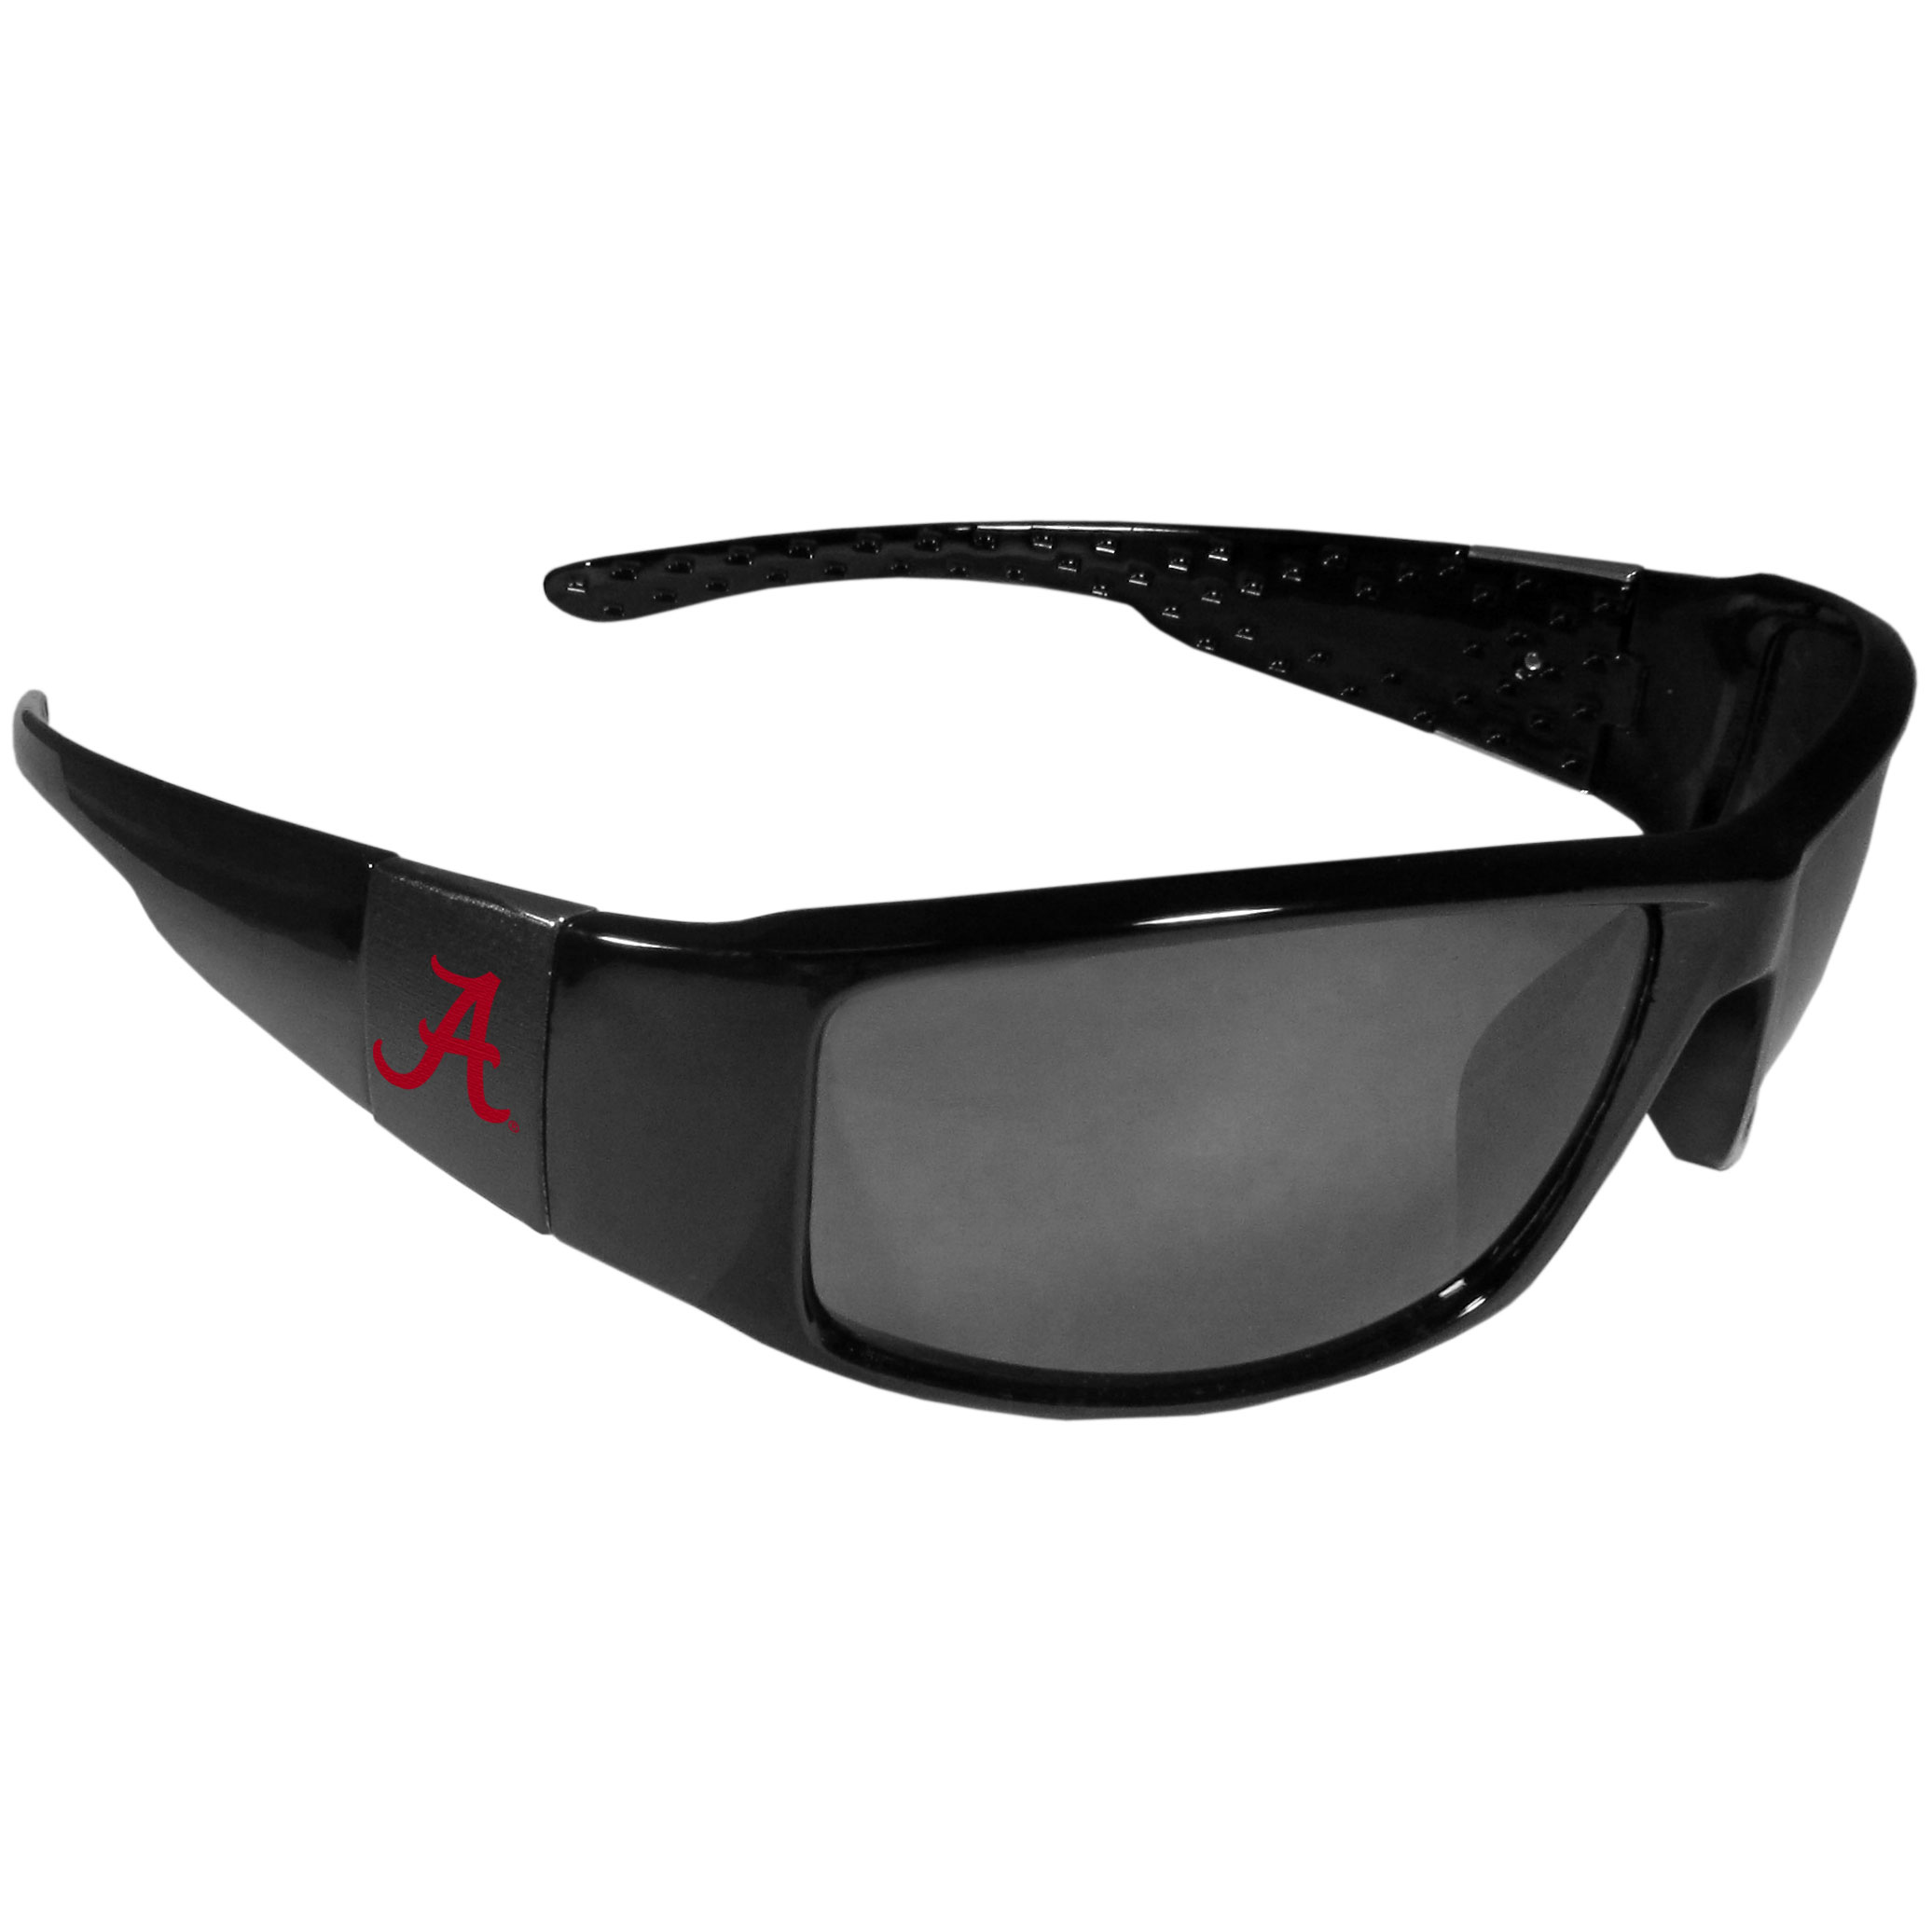 Alabama Crimson Tide Black Wrap Sunglasses - These designer inspired frames have a sleek look in all black with  Alabama Crimson Tide shields on each arm with a printed logo. The shades are perfect for any outdoor activity like; golfing, driving, hiking, fishing or cheering on the team at a tailgating event or at a home game day BBQ with a lens rating of 100% UVA/UVB for maximum UV protection. The high-quality frames are as durable as they are fashionable and with their classic look they are the perfect fan accessory that can be worn everyday for every occasion.